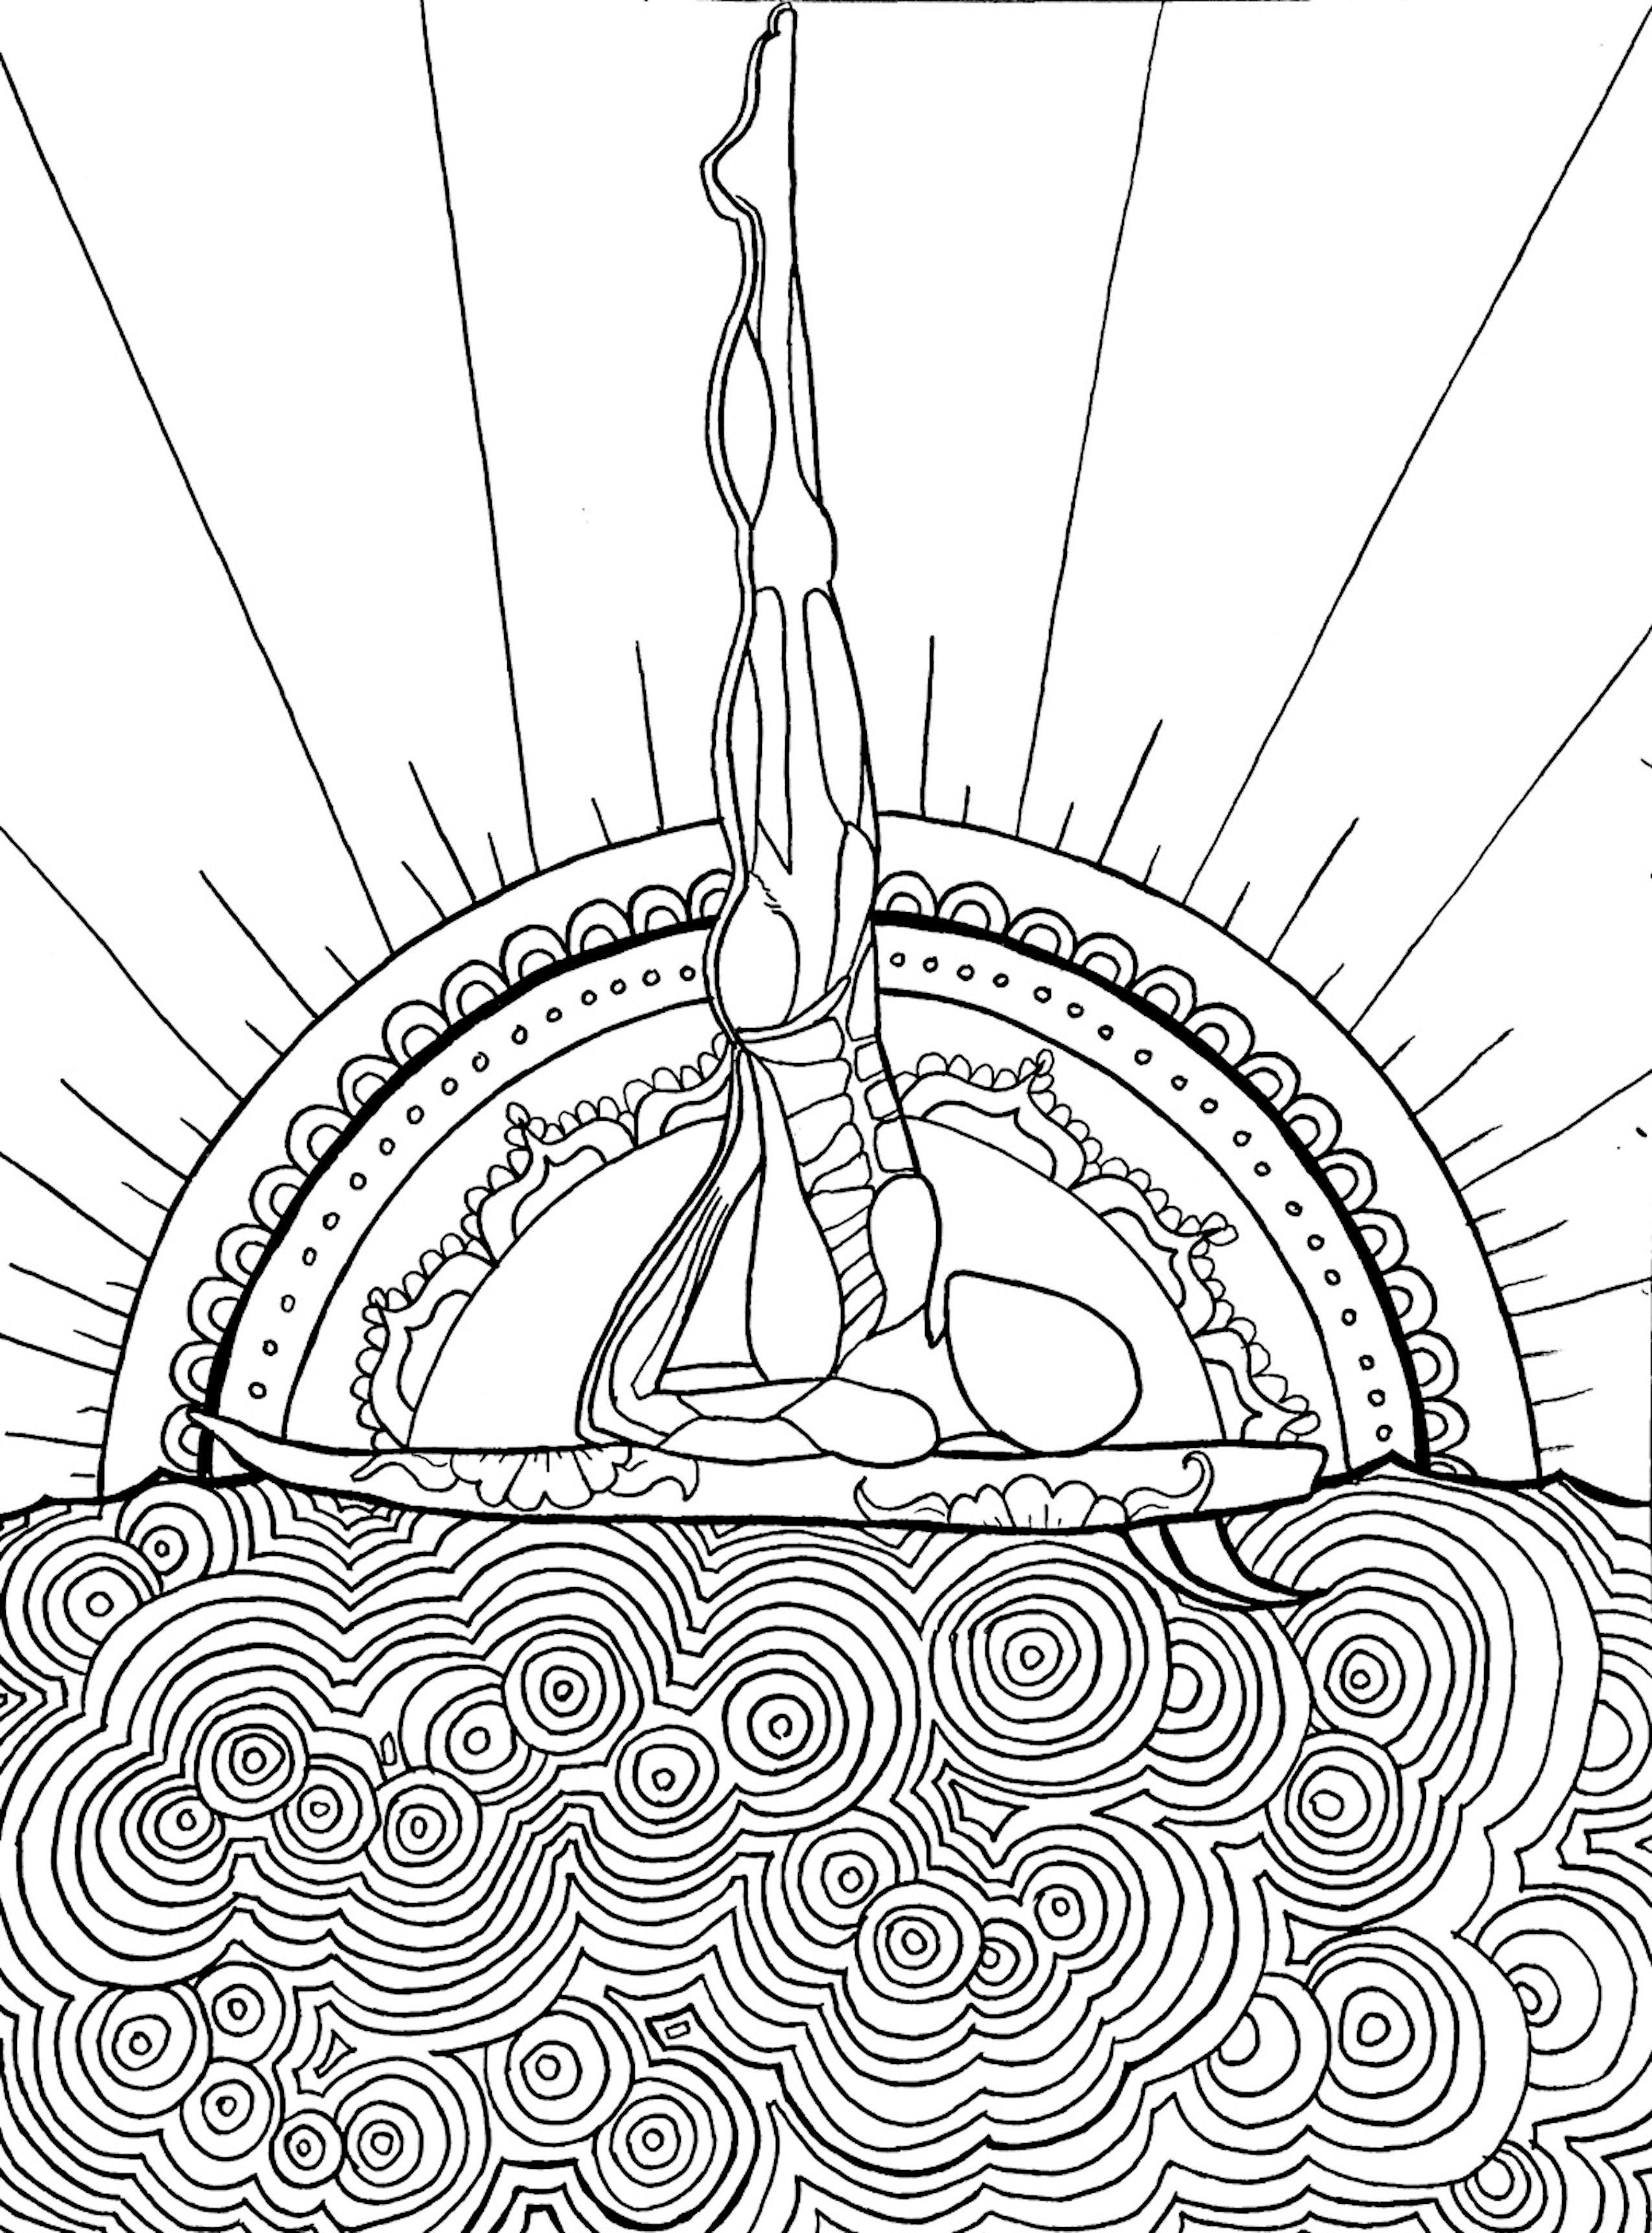 Coloring pages for down syndrome adults - A Coloring Page From Yoga In Color A Yoga Anatomy Coloring Exploration Check